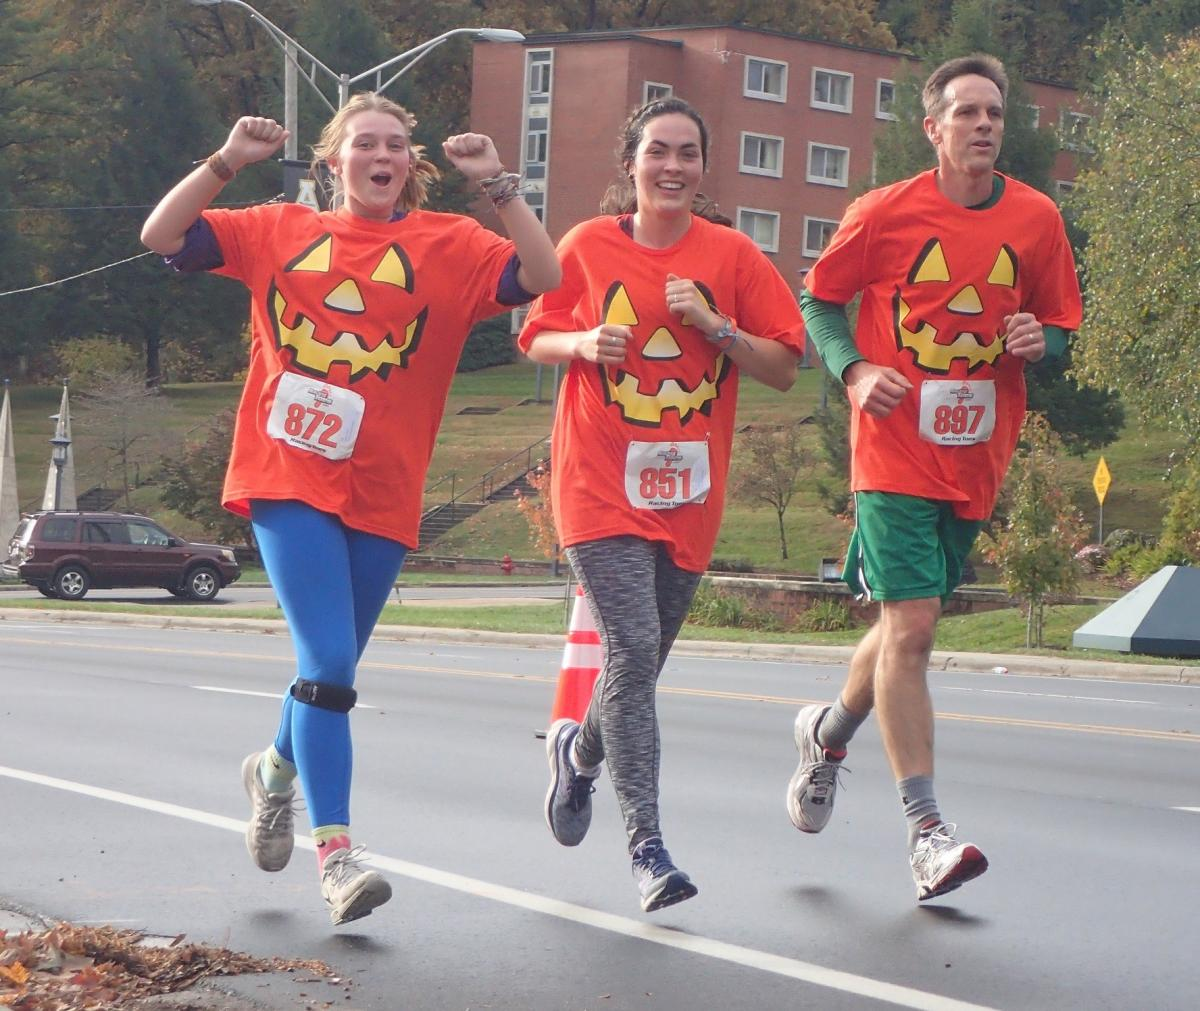 Runners at Spooky Duke race